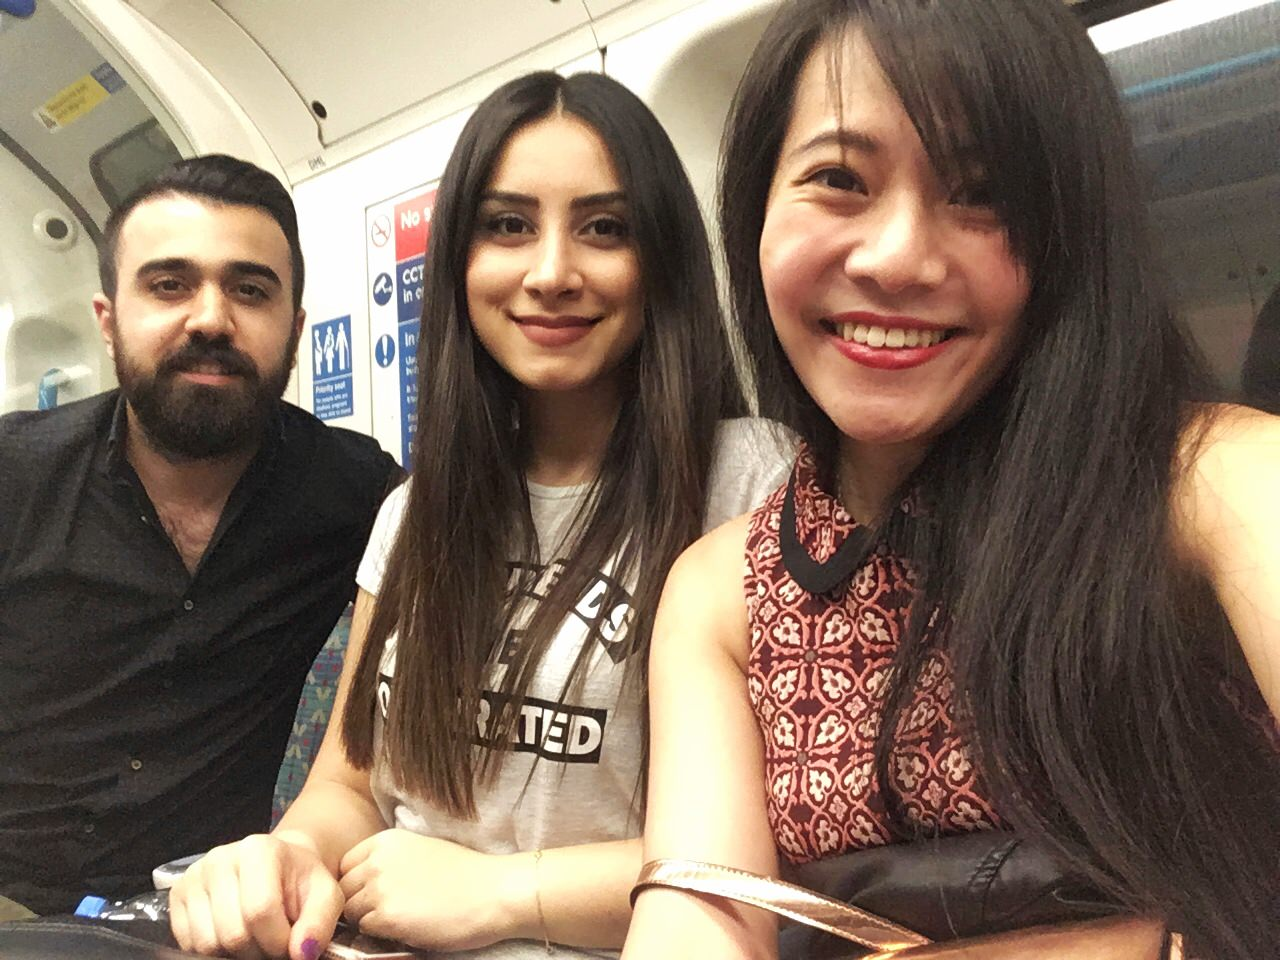 My Turkish friends and I on the way to try Malaysian food in London's Malaysia Hall.